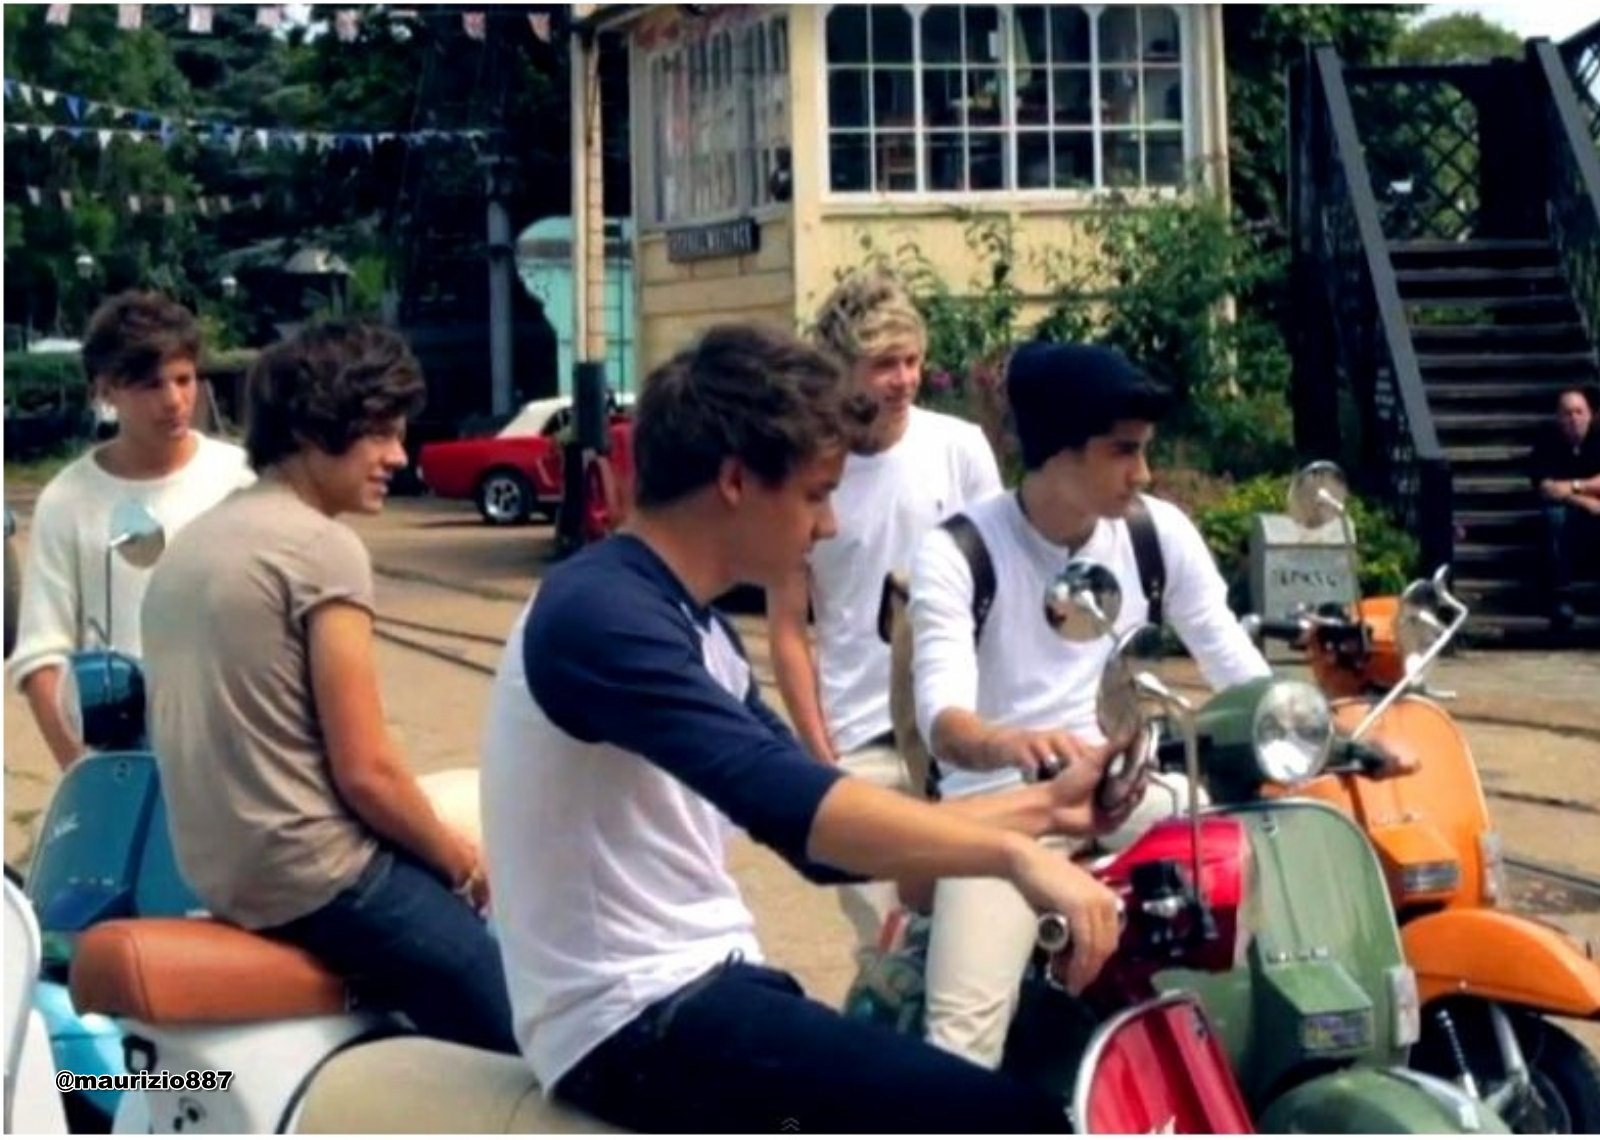 One Direction Take Me Home photoshoot 2012 - One Direction